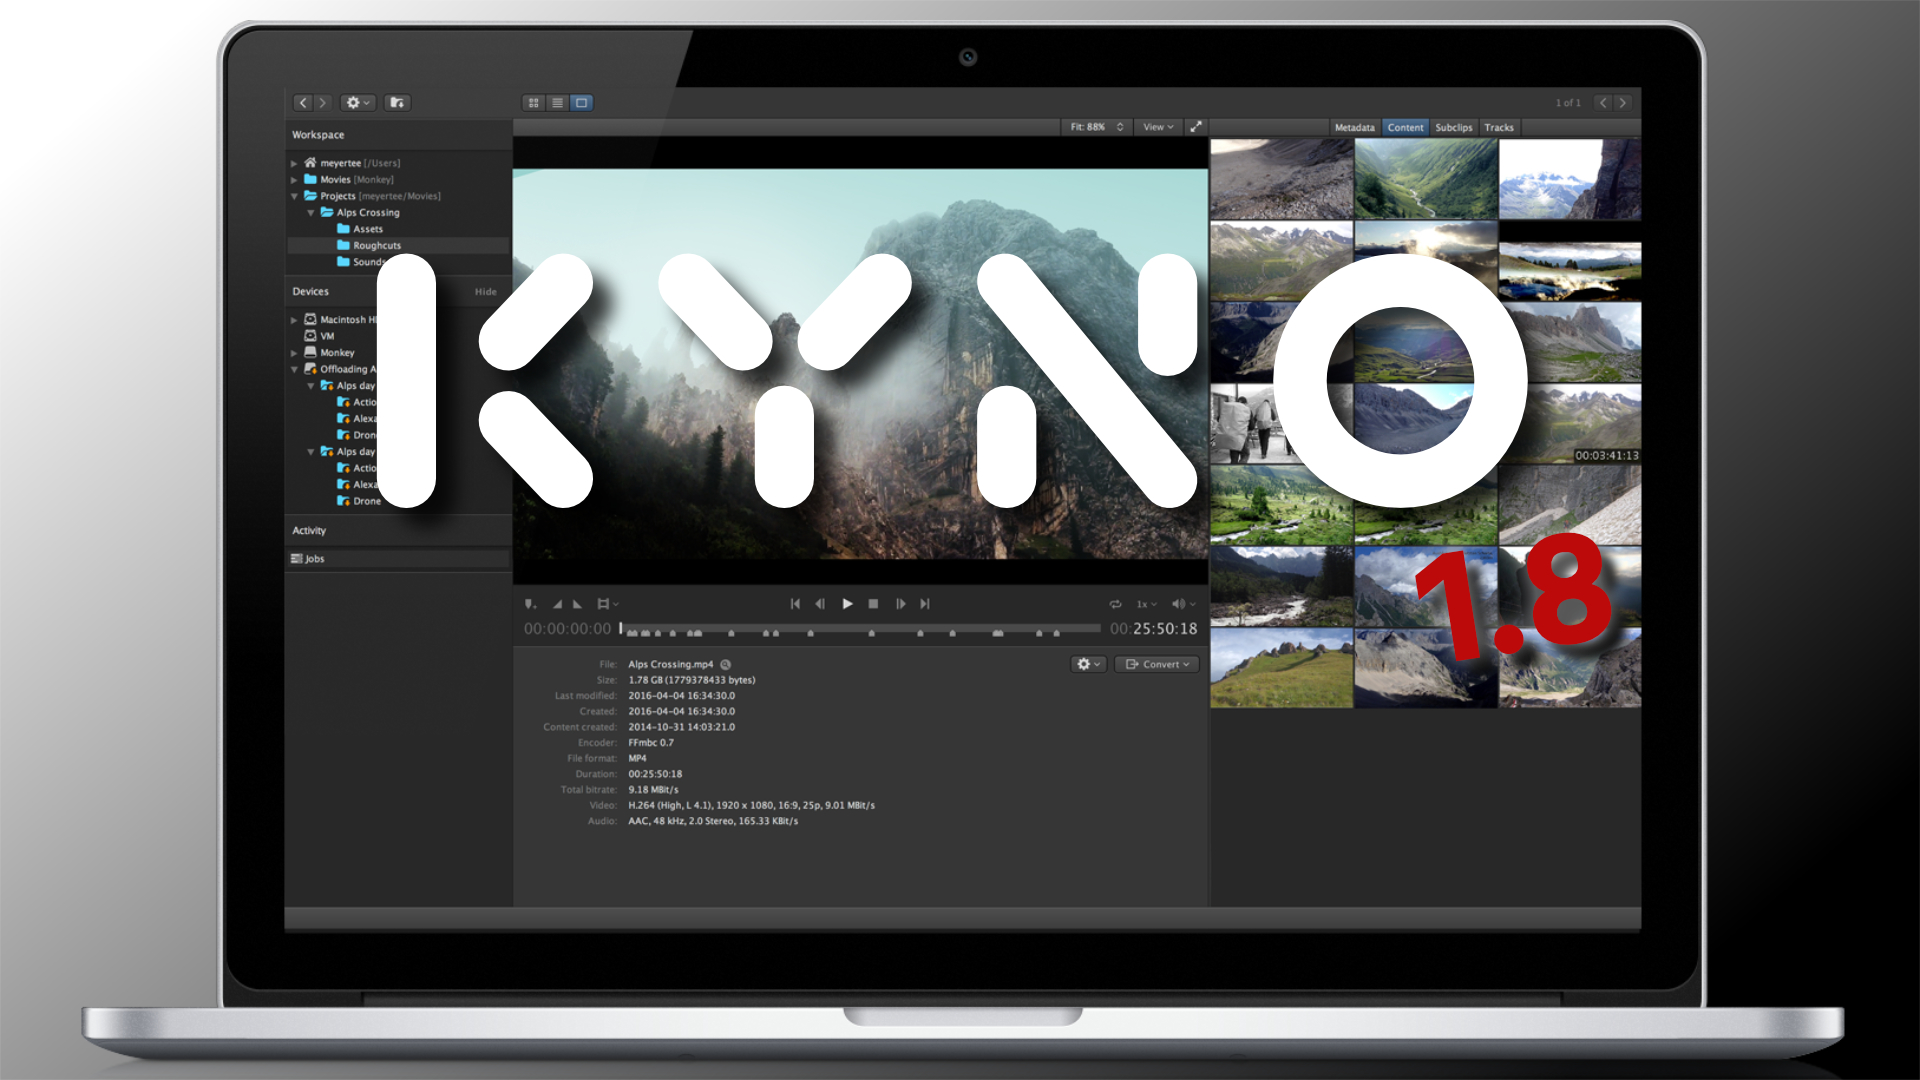 Presentaron el Kyno 1.8 - Blackmagic RAW y resolución e integración Avid